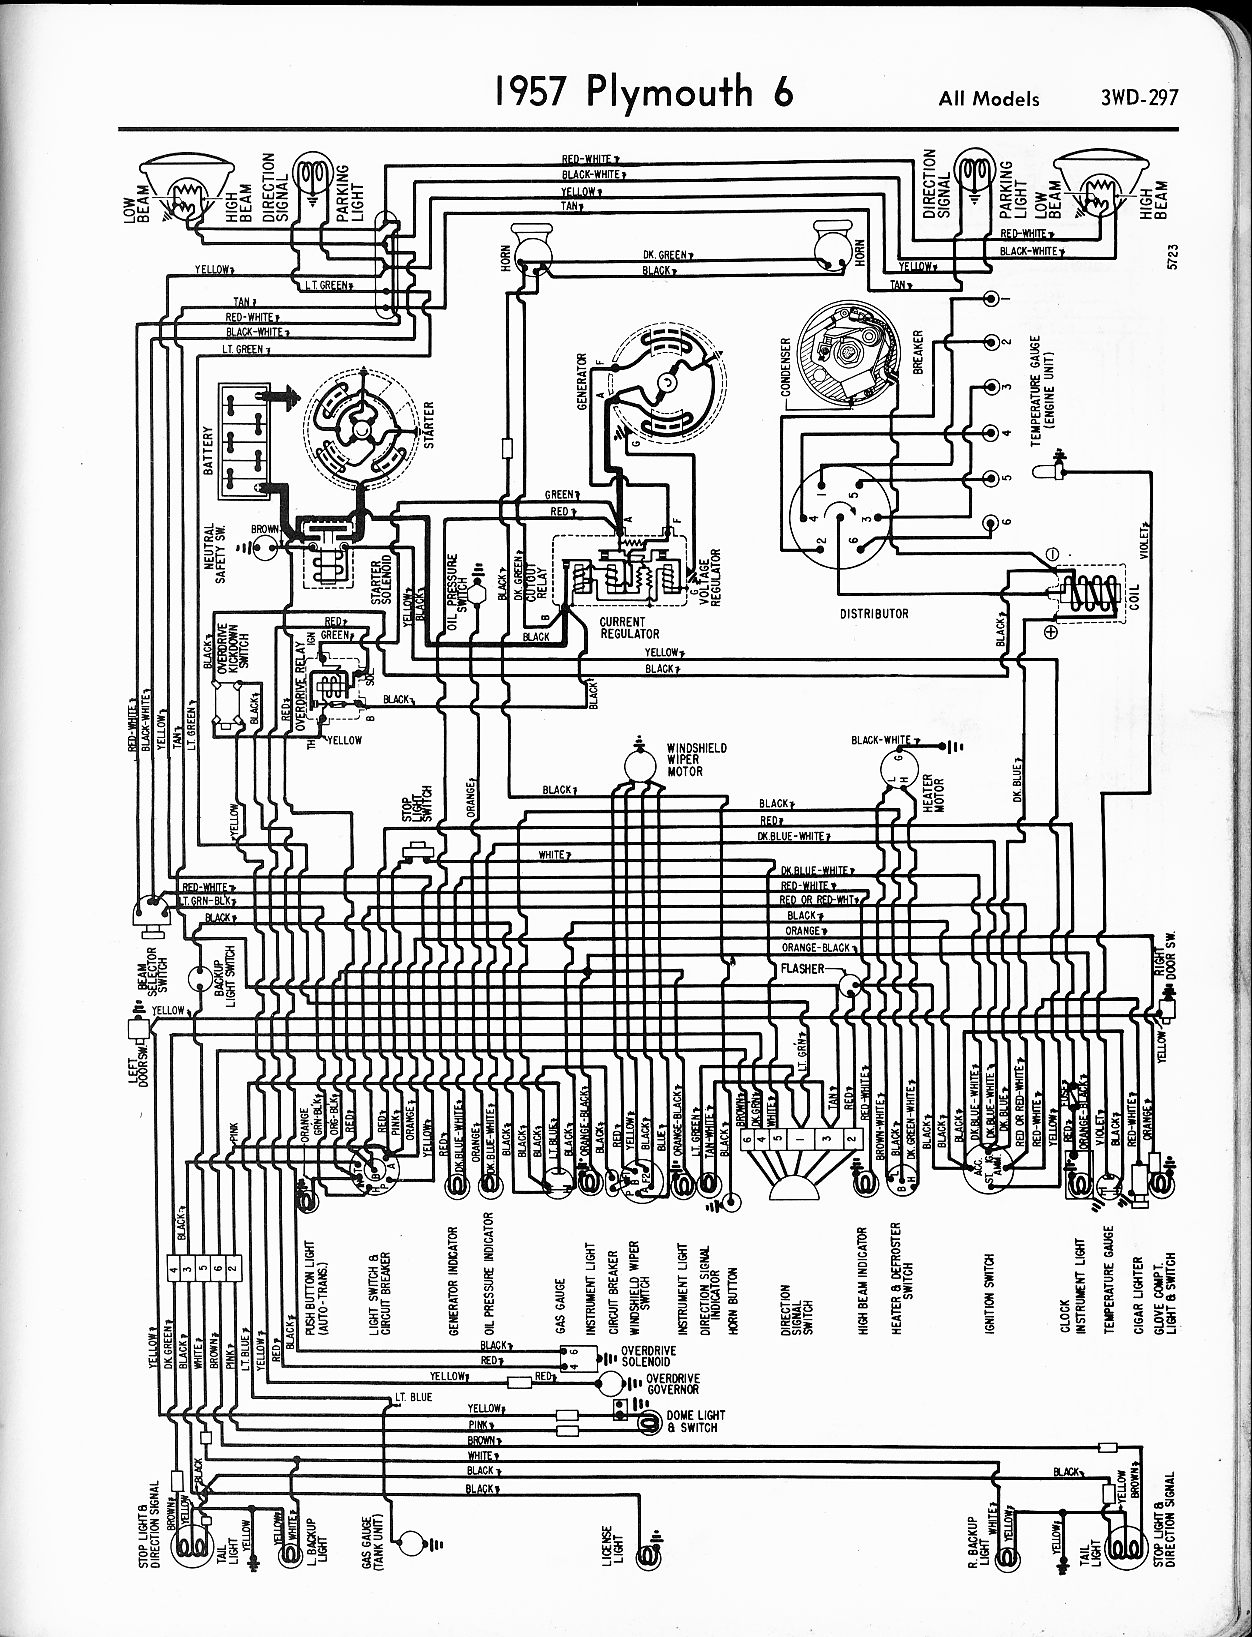 Workhorse Ballast T5 Wiring Diagram